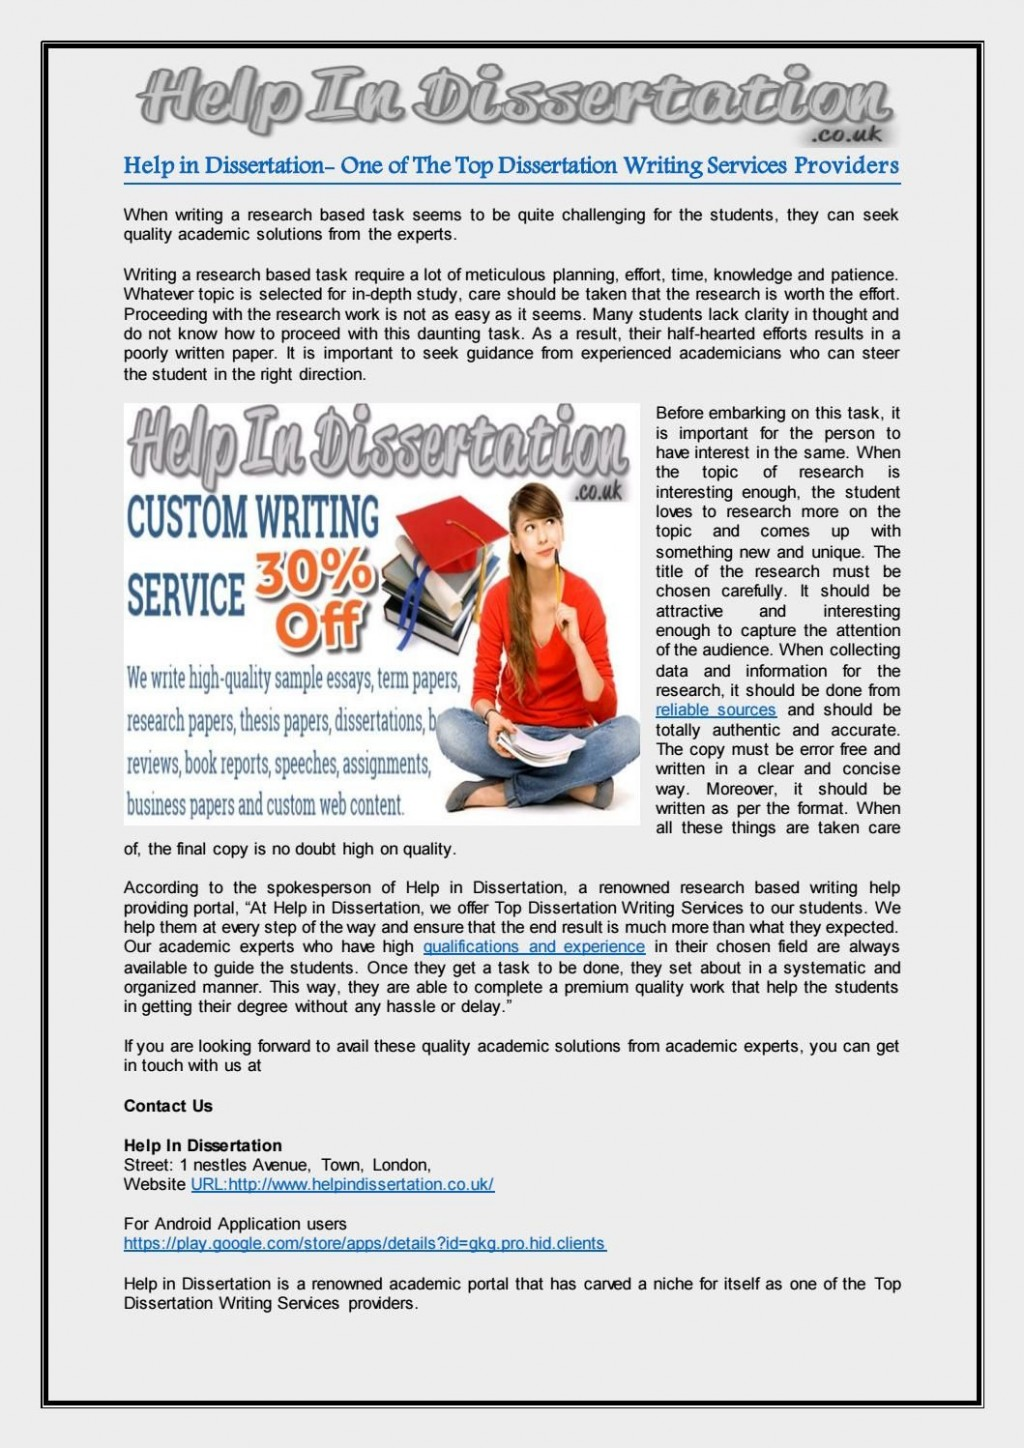 027 Research Paper Best Fearsome Websites Top Writing Large